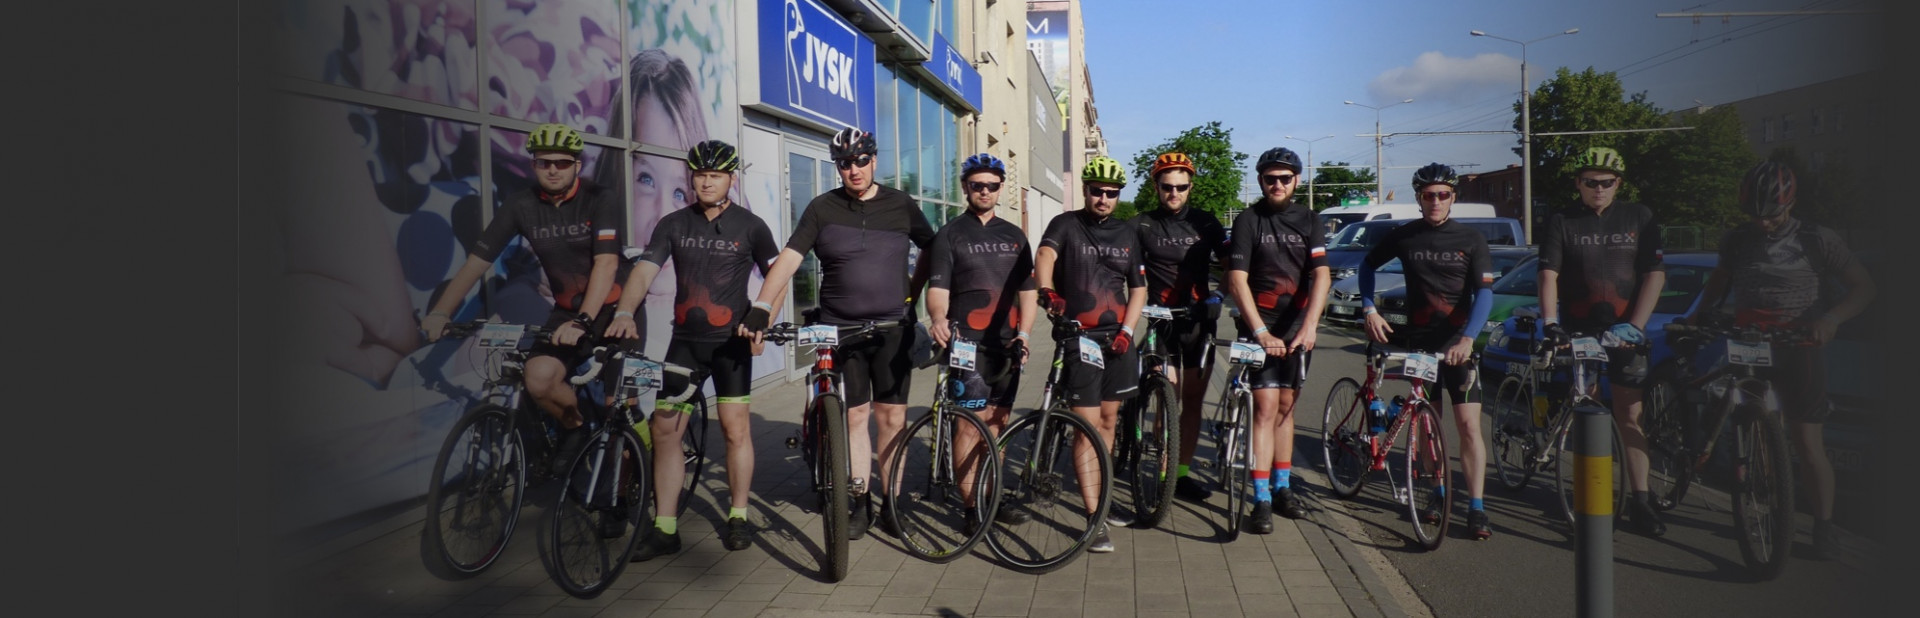 Intrex Cycling Club